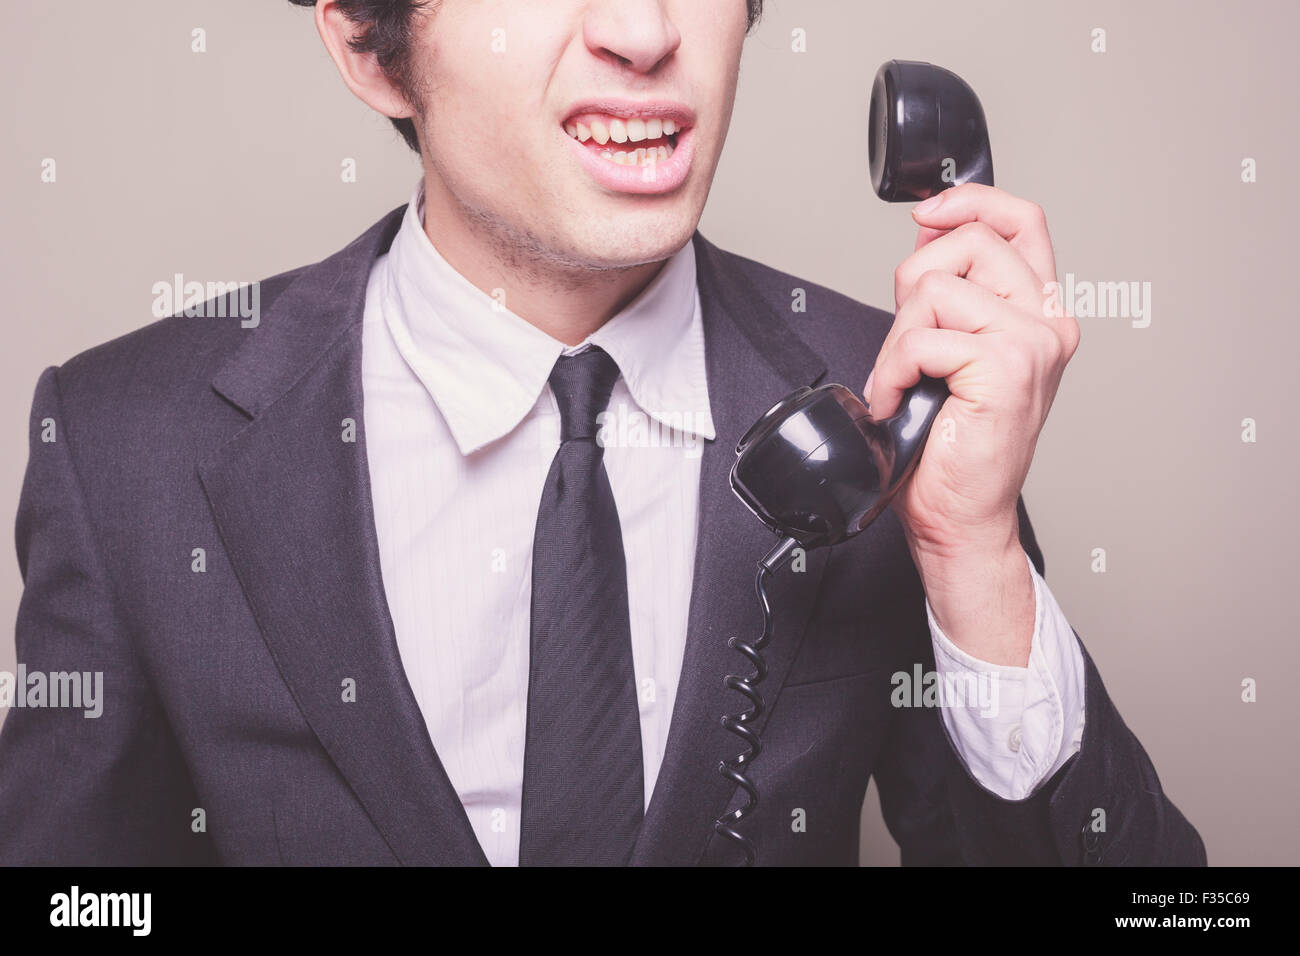 Young businessman can't believe what he is hearing on the phone - Stock Image